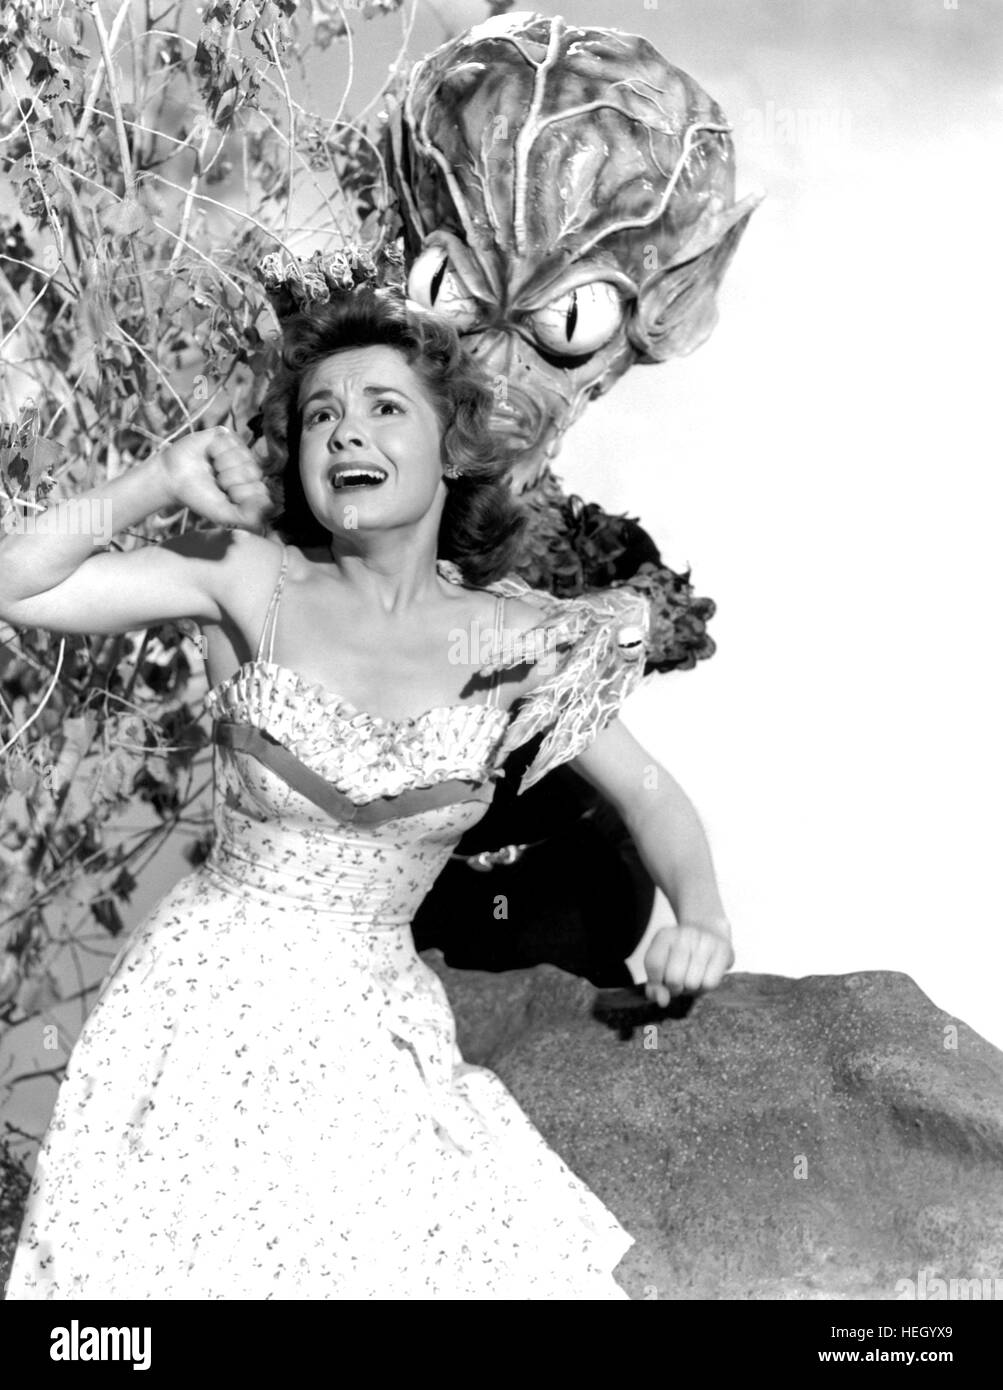 INVASION OF THE SAUCER MEN (aka Invasion of the Hell Creatures) 1957 AIP sci-fi film with Gloria Castillo - Stock Image